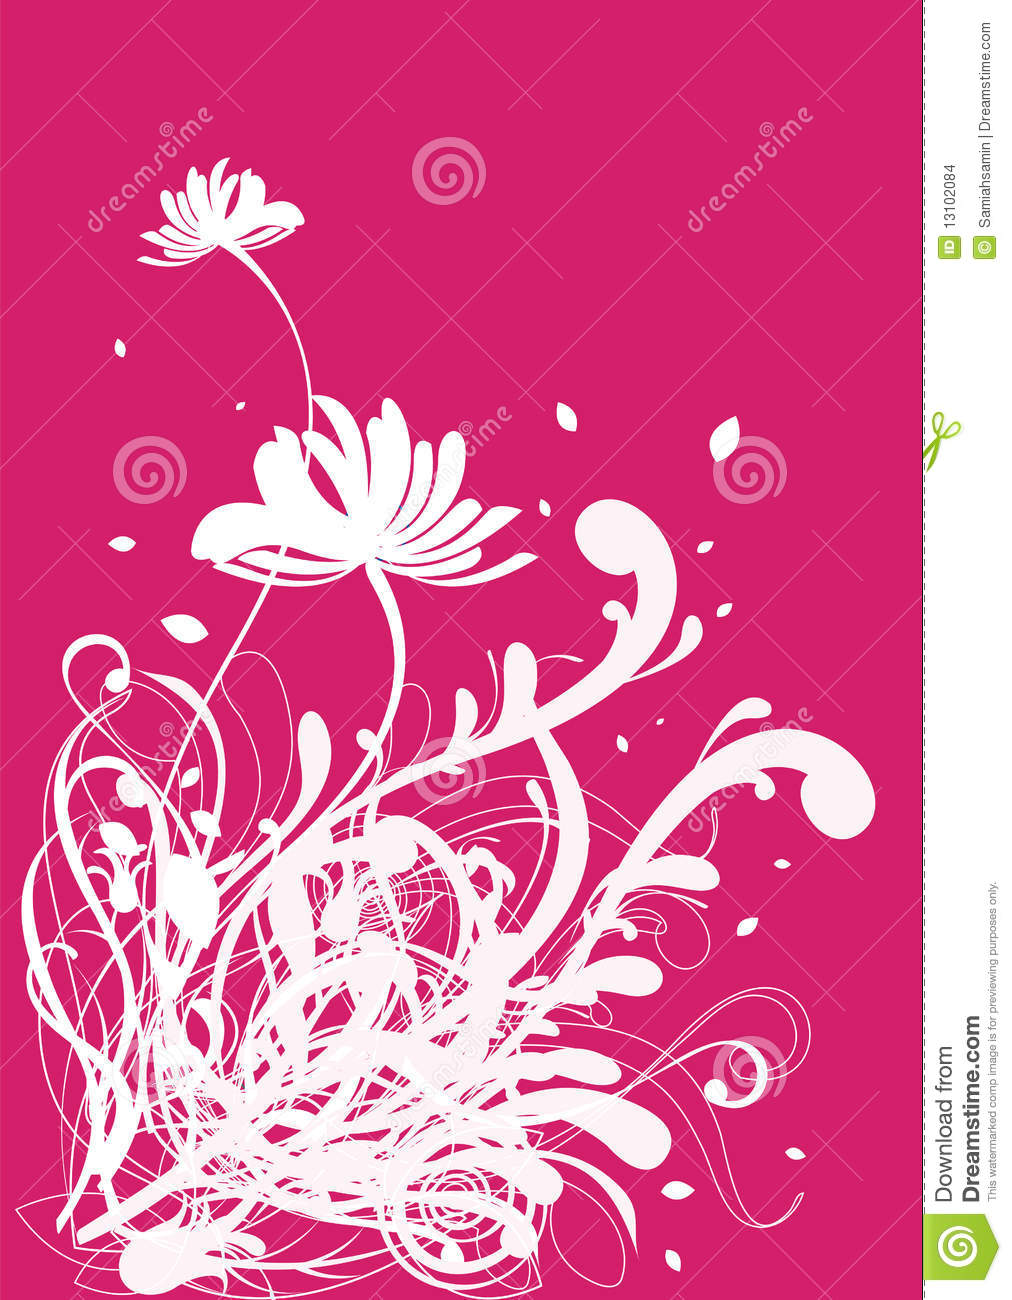 royalty free stock photo download floral background design patterns